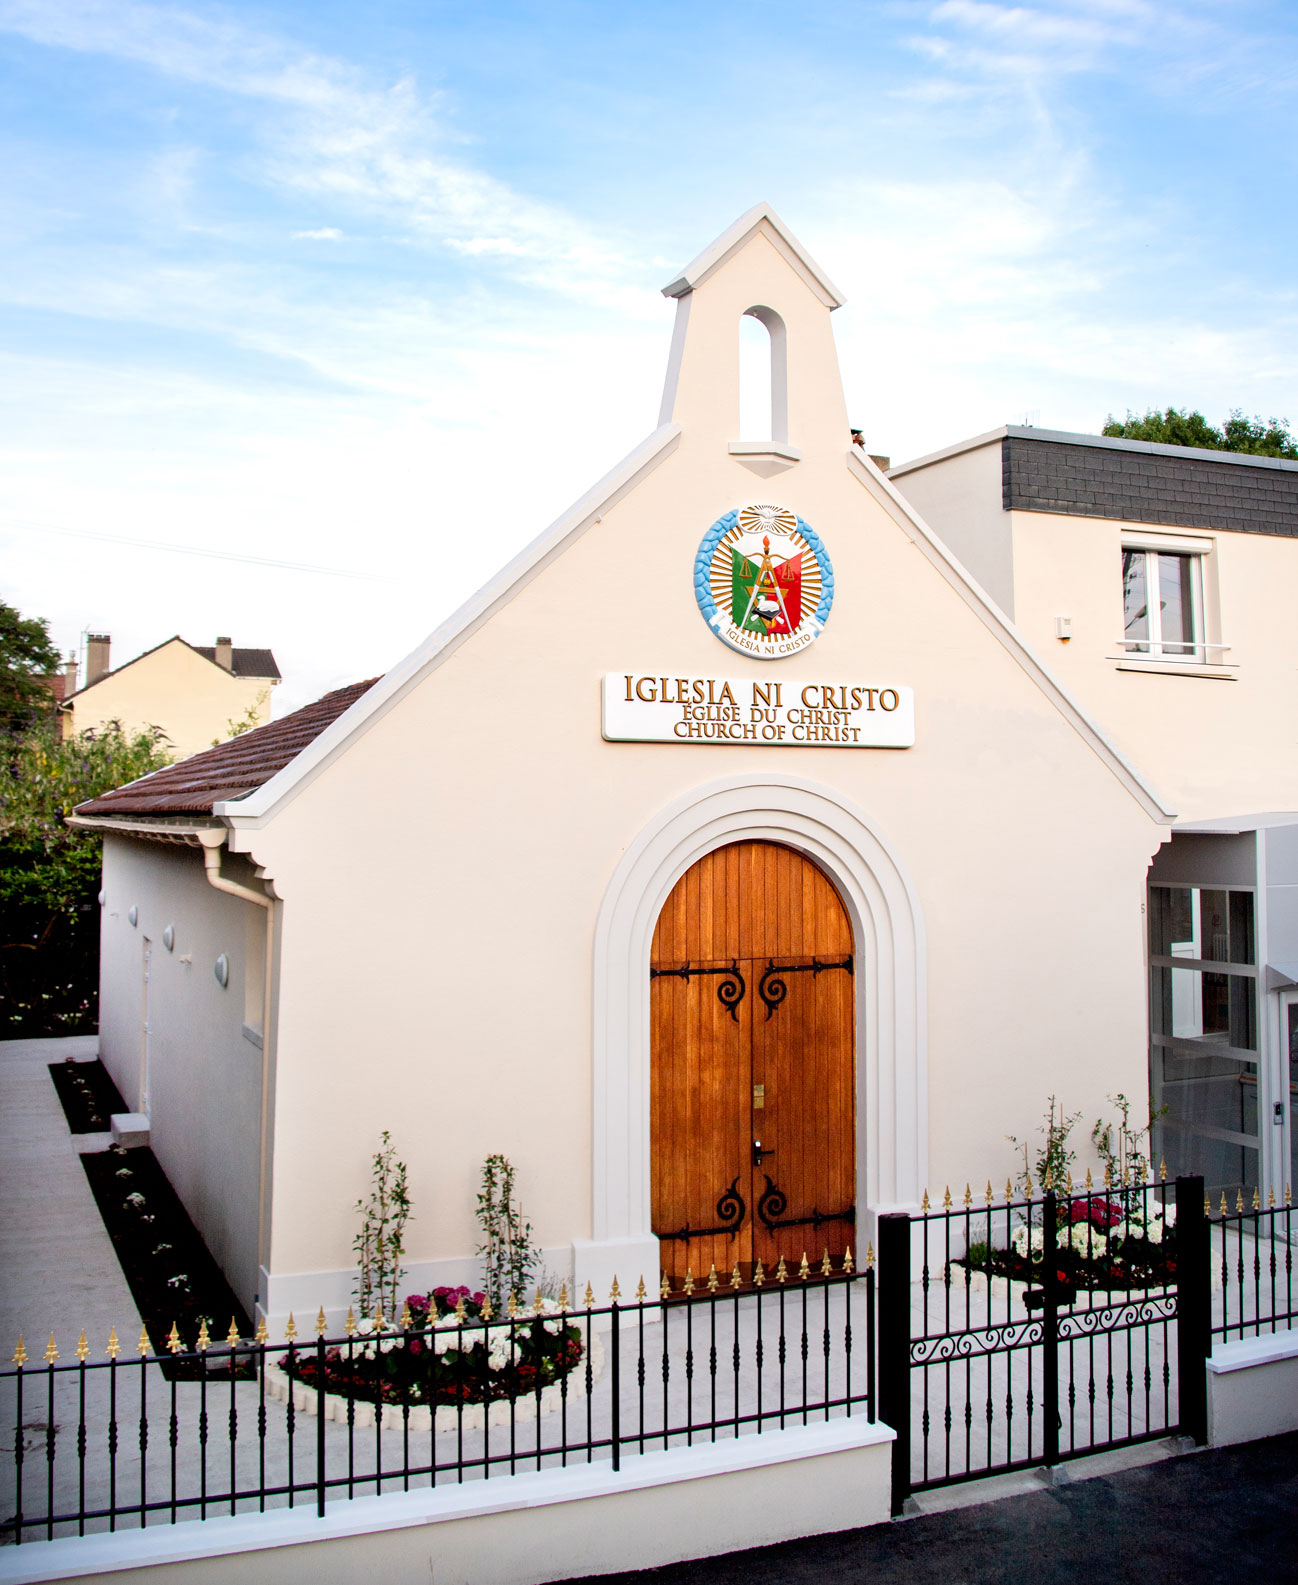 The house of worship of Val-d'Oise Local Congregation in France dedicated on July 14, 2019